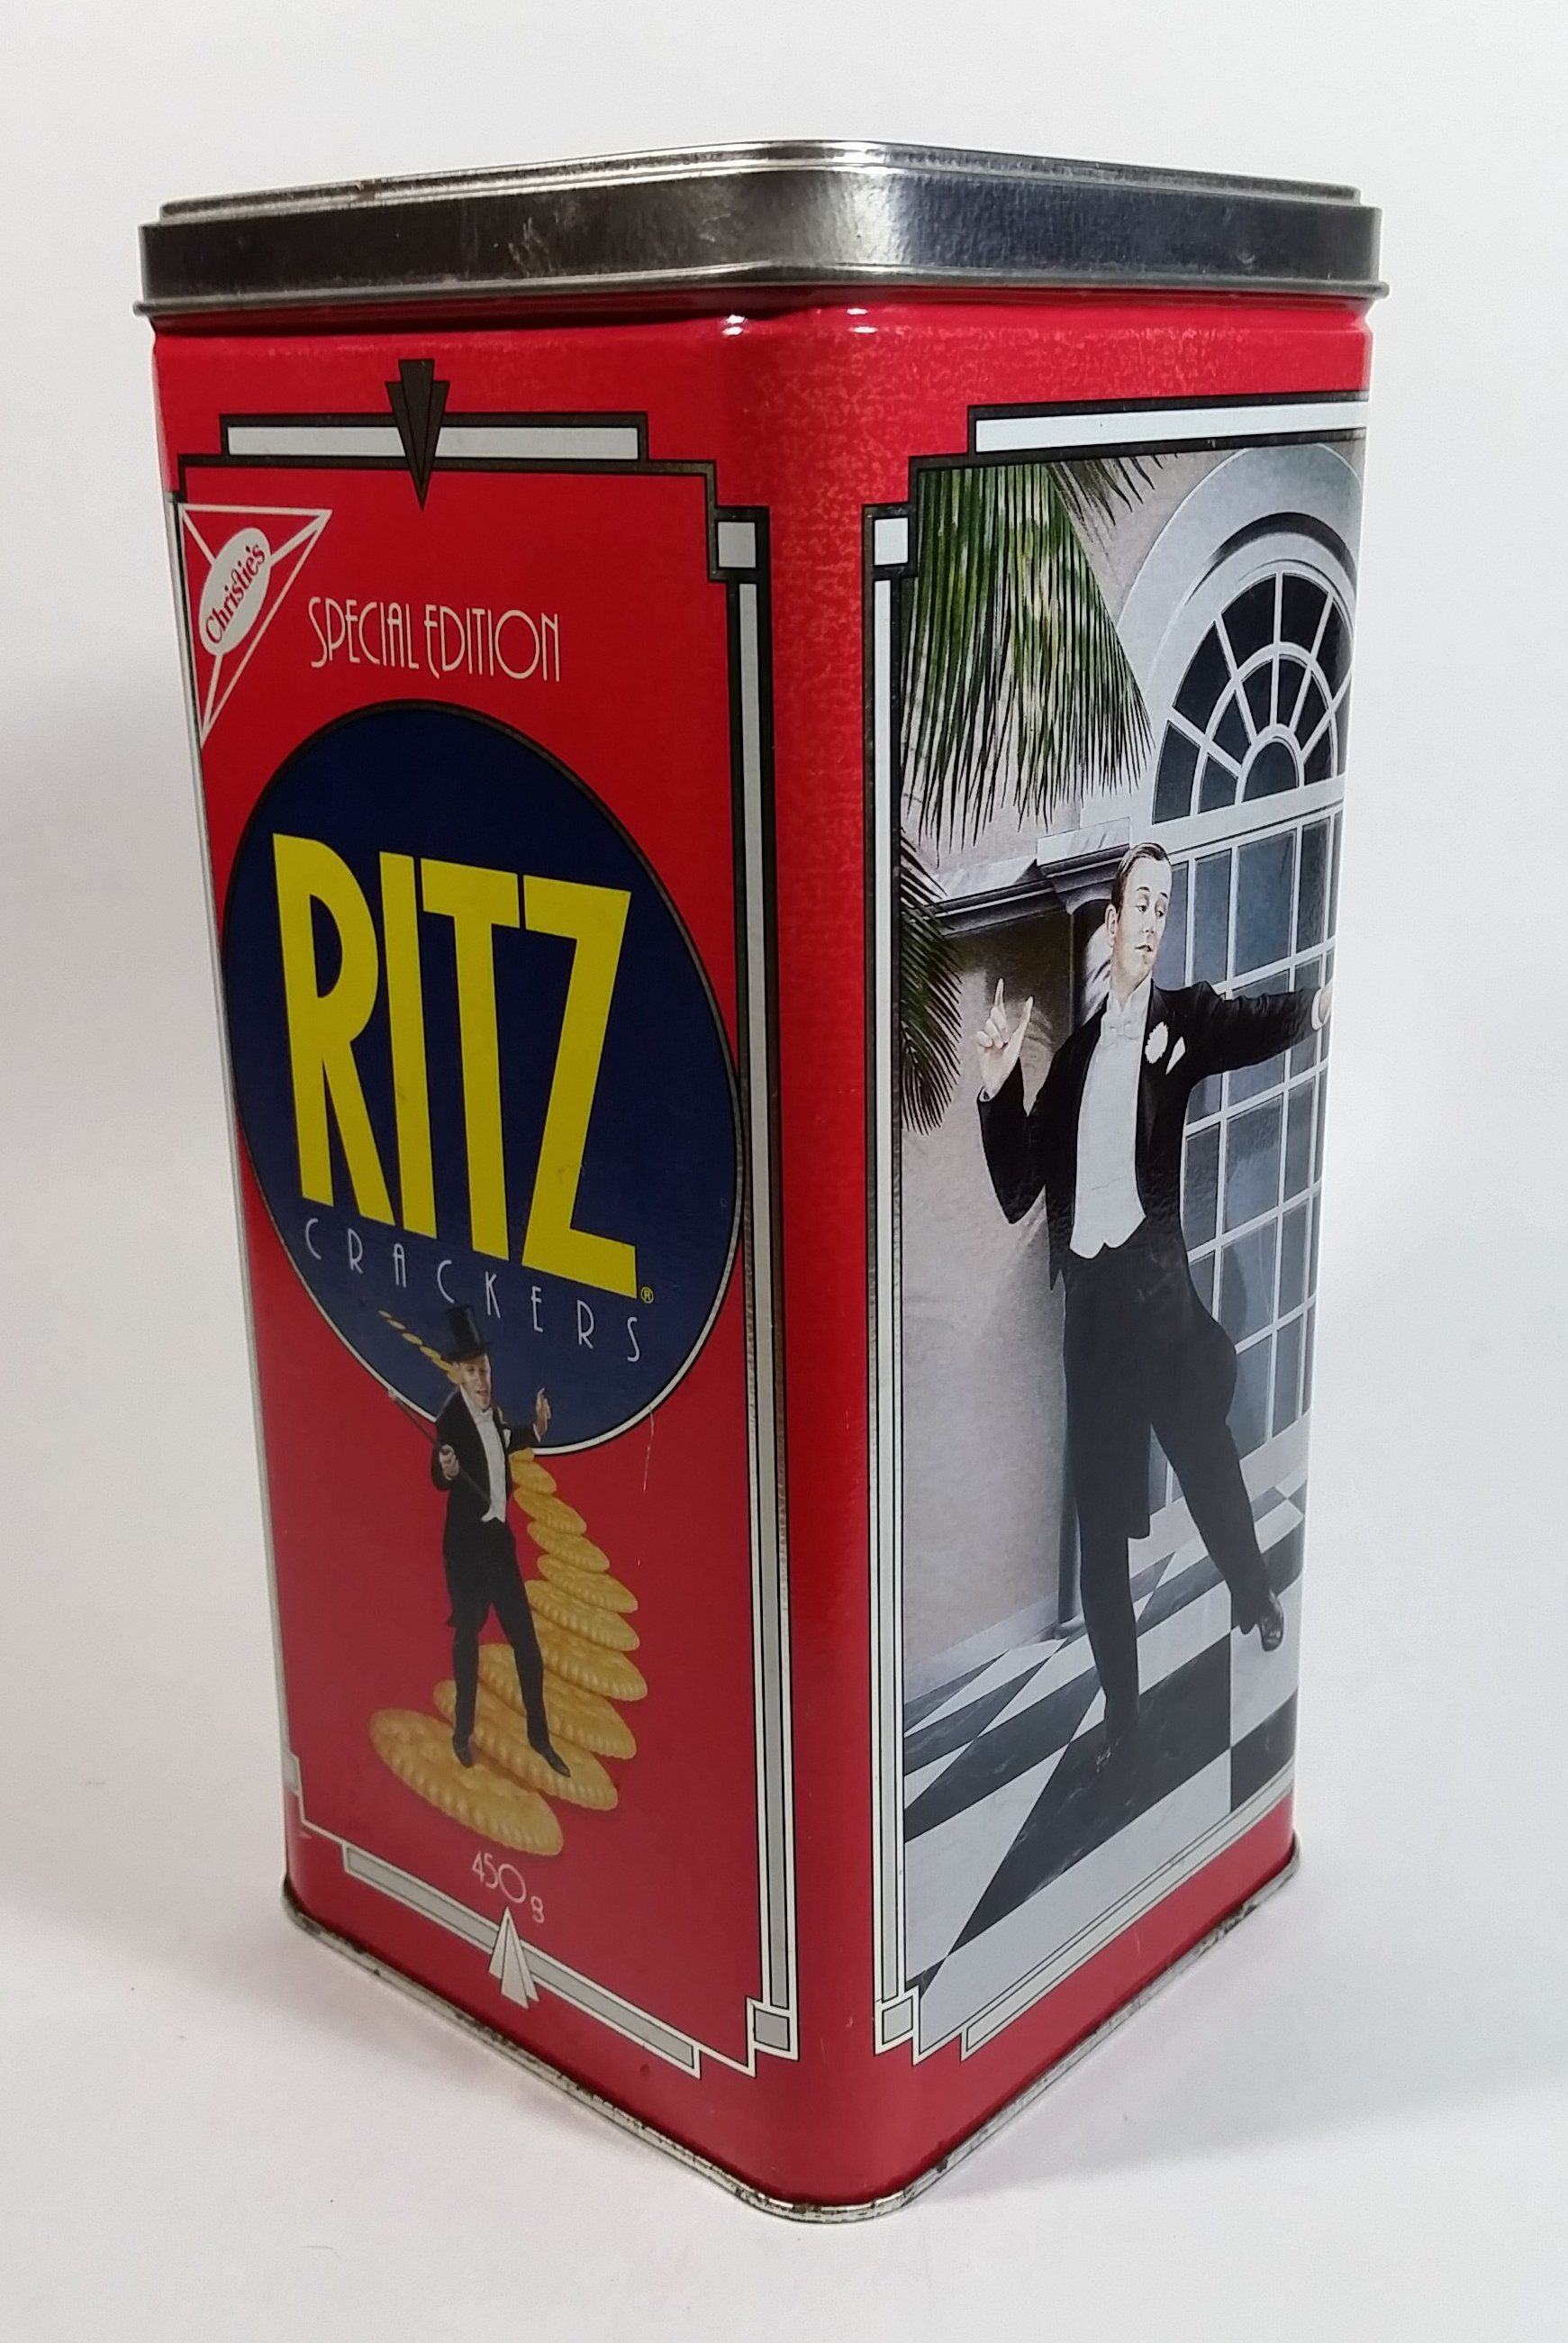 1990 Christie S Limited Edition Ritz Crackers Tin Nabisco Brands Ritz Crackers Ritz Nabisco